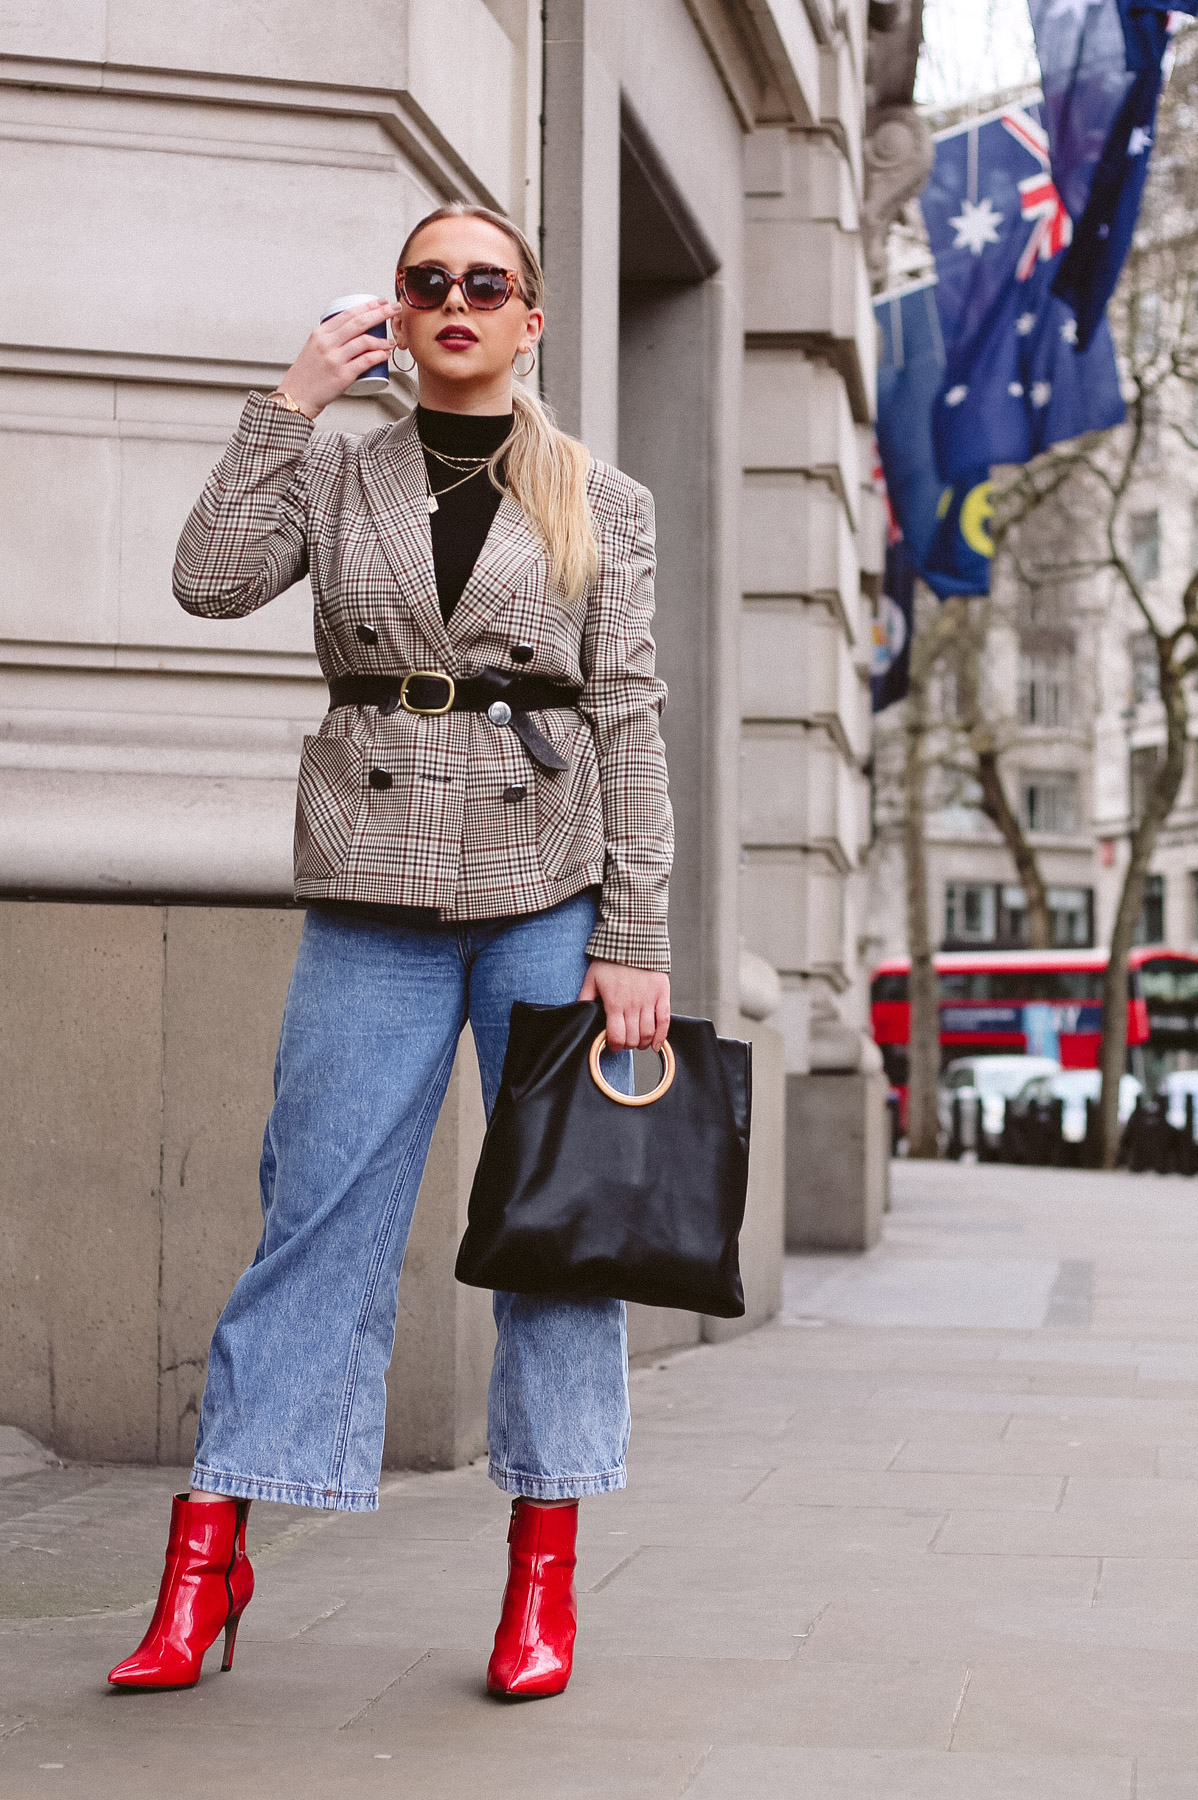 london fashion week aw18 street style trends red ankle boots